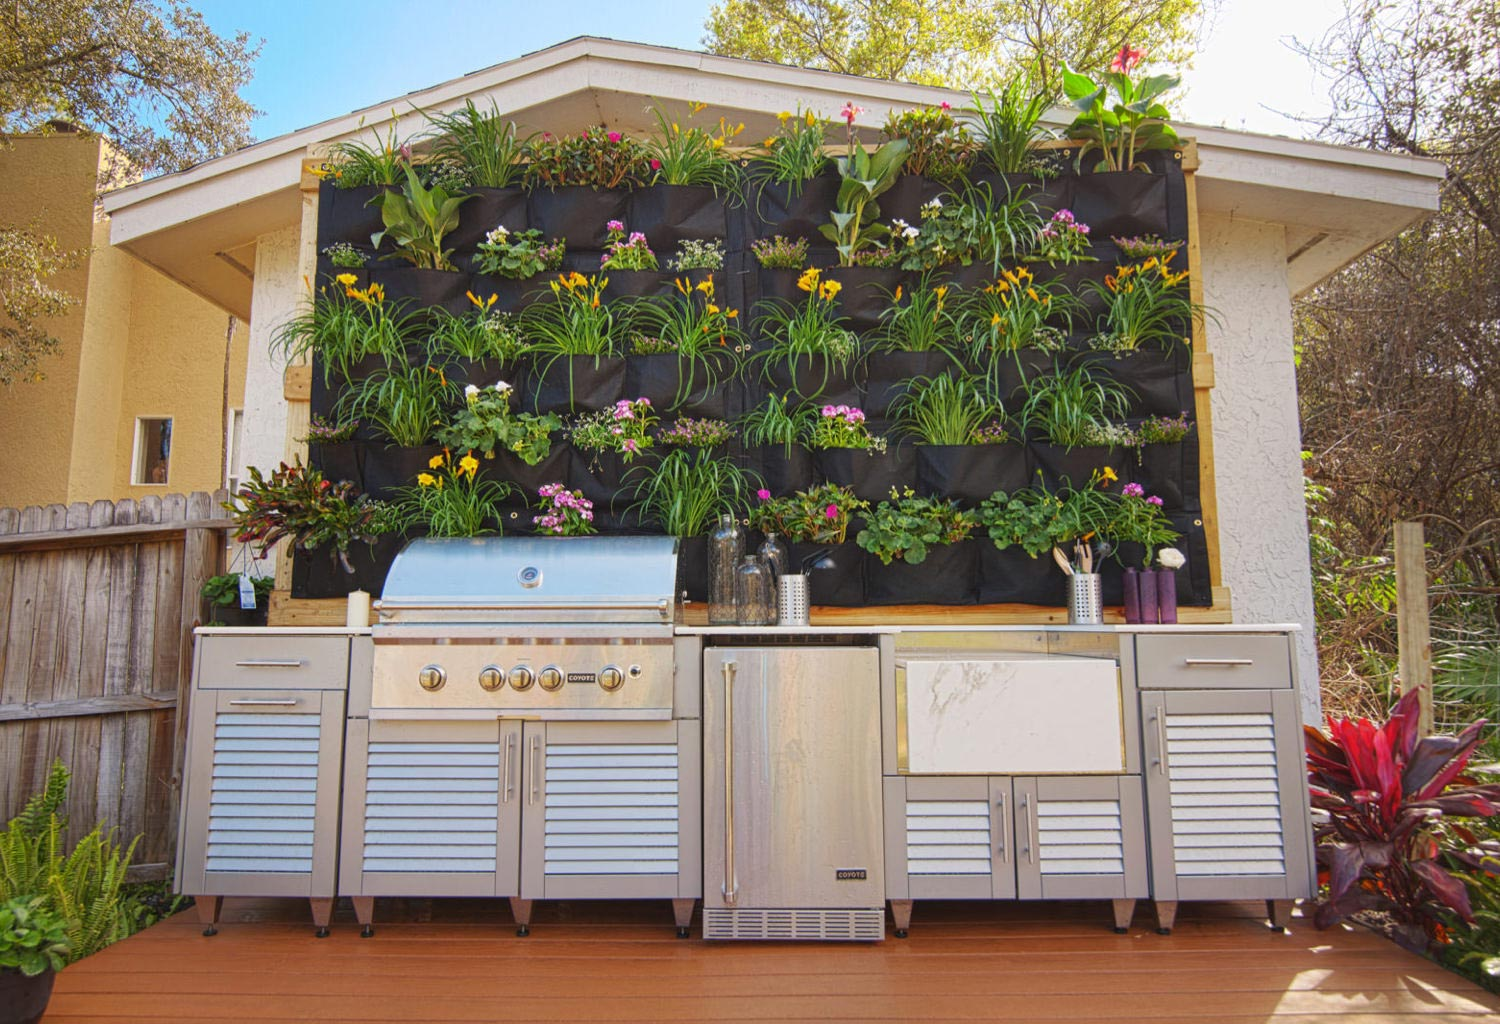 Outdoor grill with deck and hanging flowers